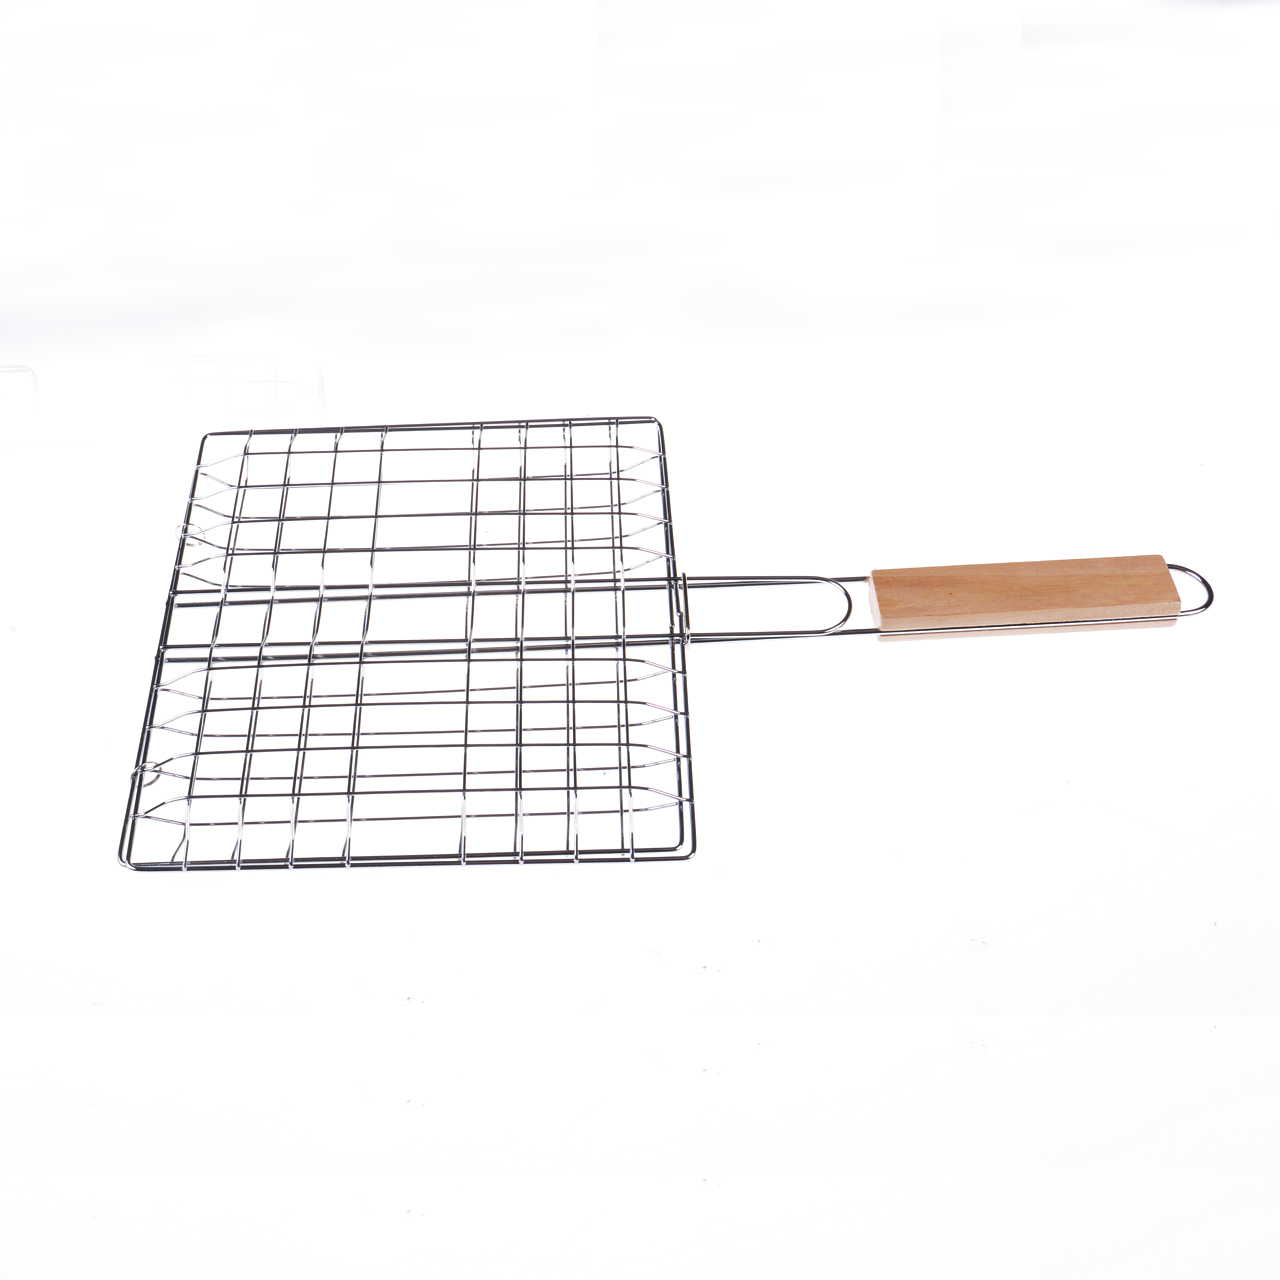 BBQ Tools Meat Fish Grill Basket Vegetables Barbeque Food Holder Barbecue Tray New Portable Wild barbecue net Easy Washable